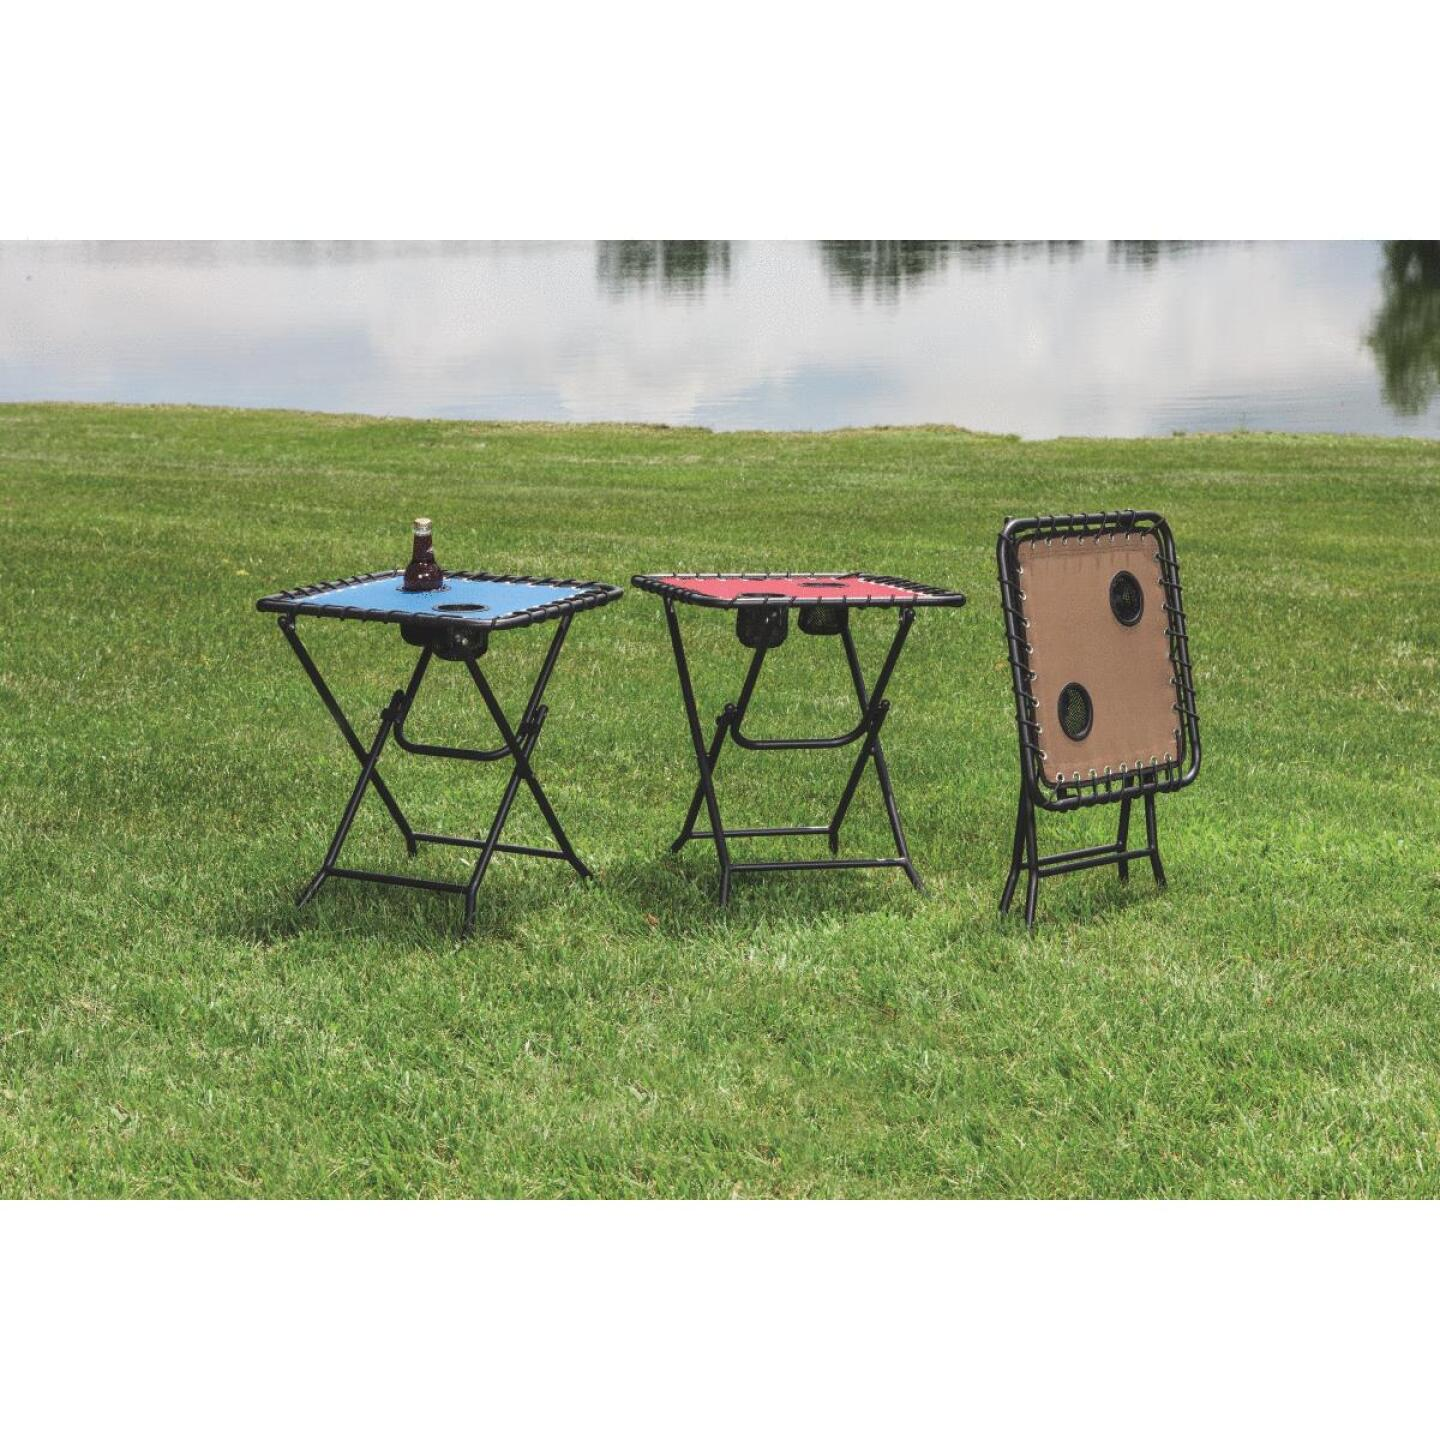 Outdoor Expressions Tan 18 In. Square Steel Folding Side Table Image 3